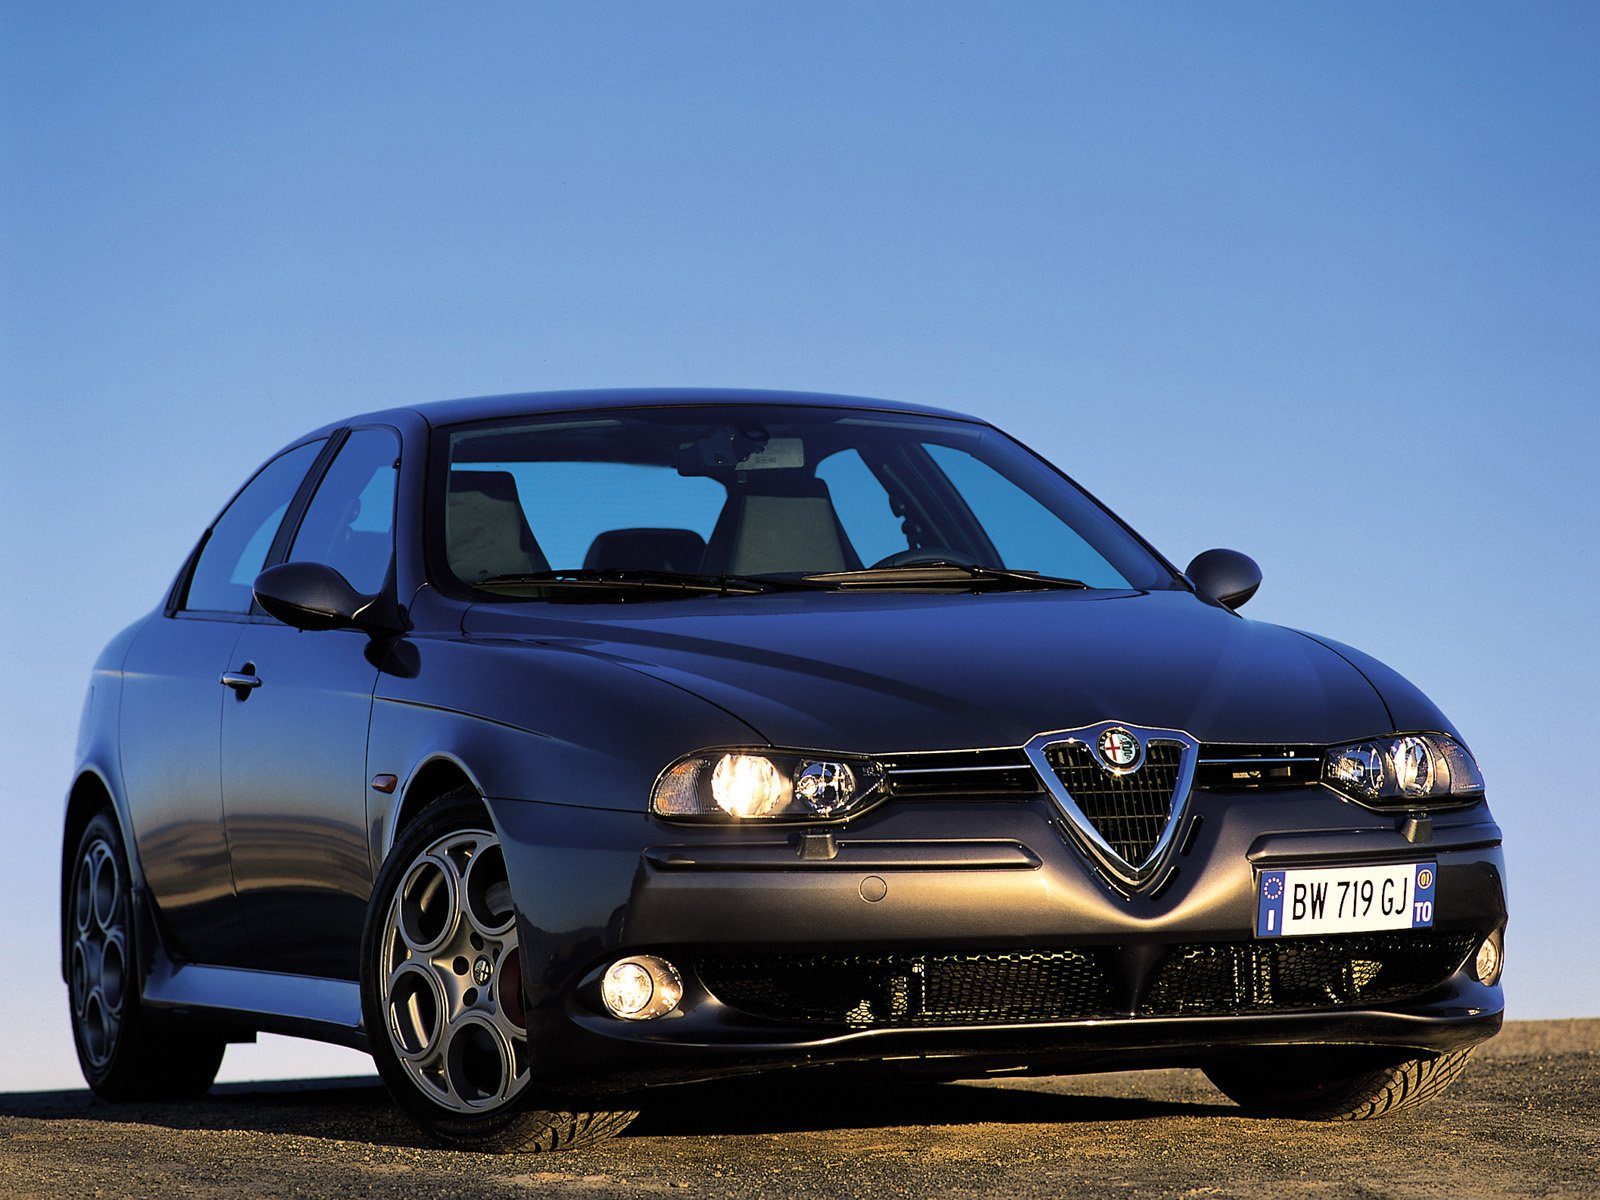 Alfa-Romeo 156 photo 02